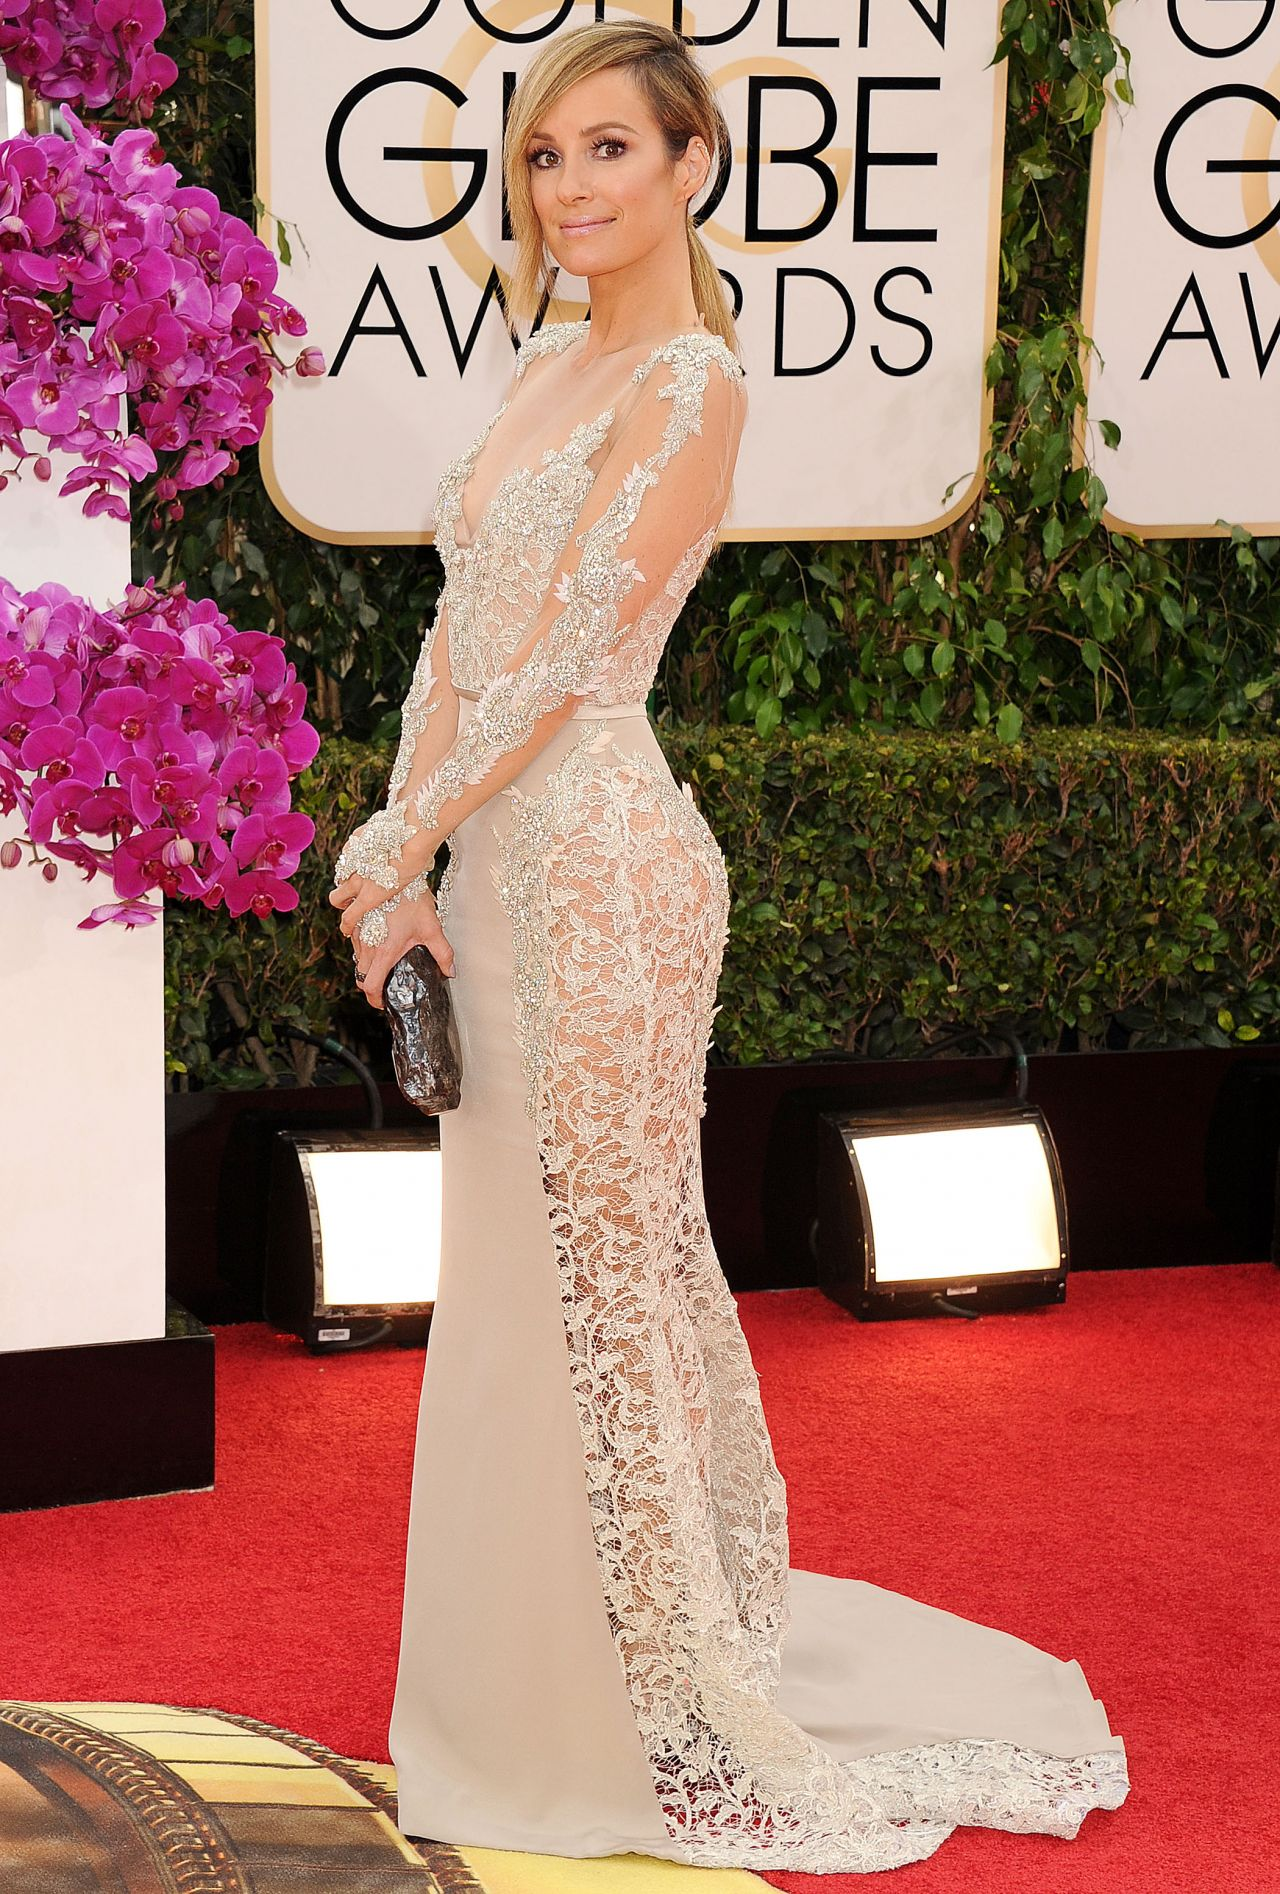 Catt Sadler at 71st Annual Golden Globe Awards, January 2014